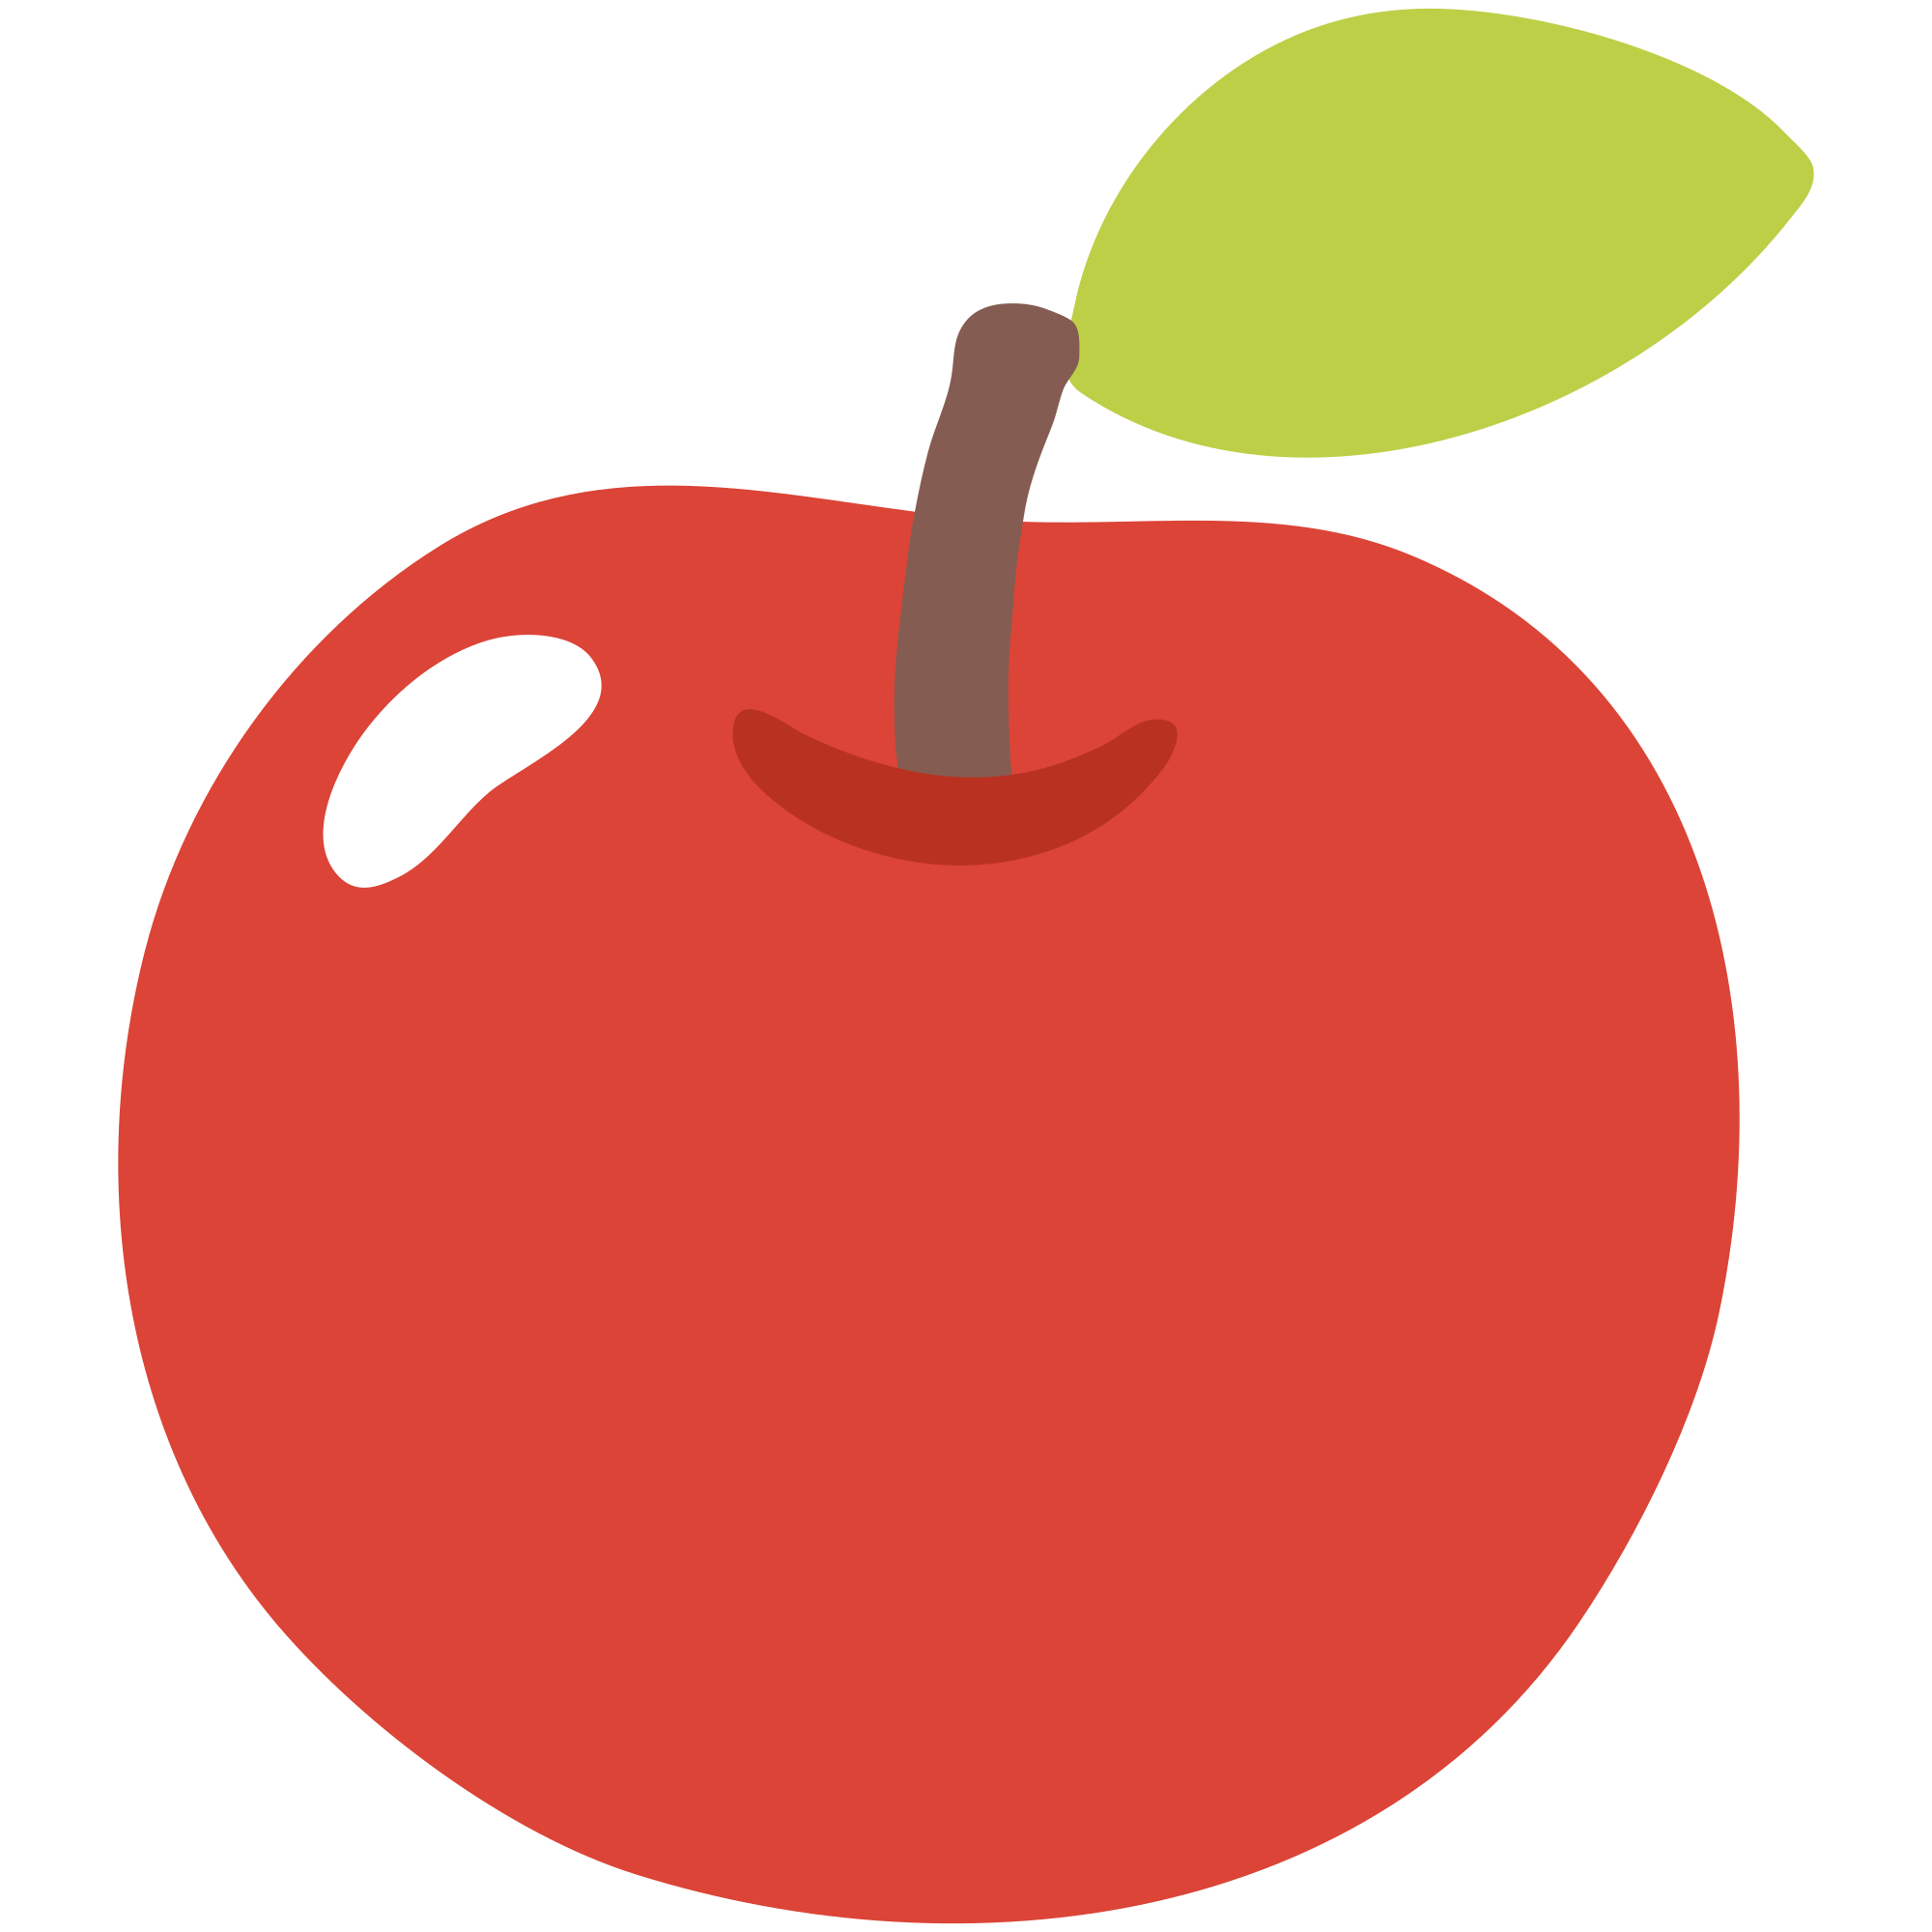 Apple emojis clipart banner freeuse library File:Emoji u1f34e.svg - Wikimedia Commons banner freeuse library